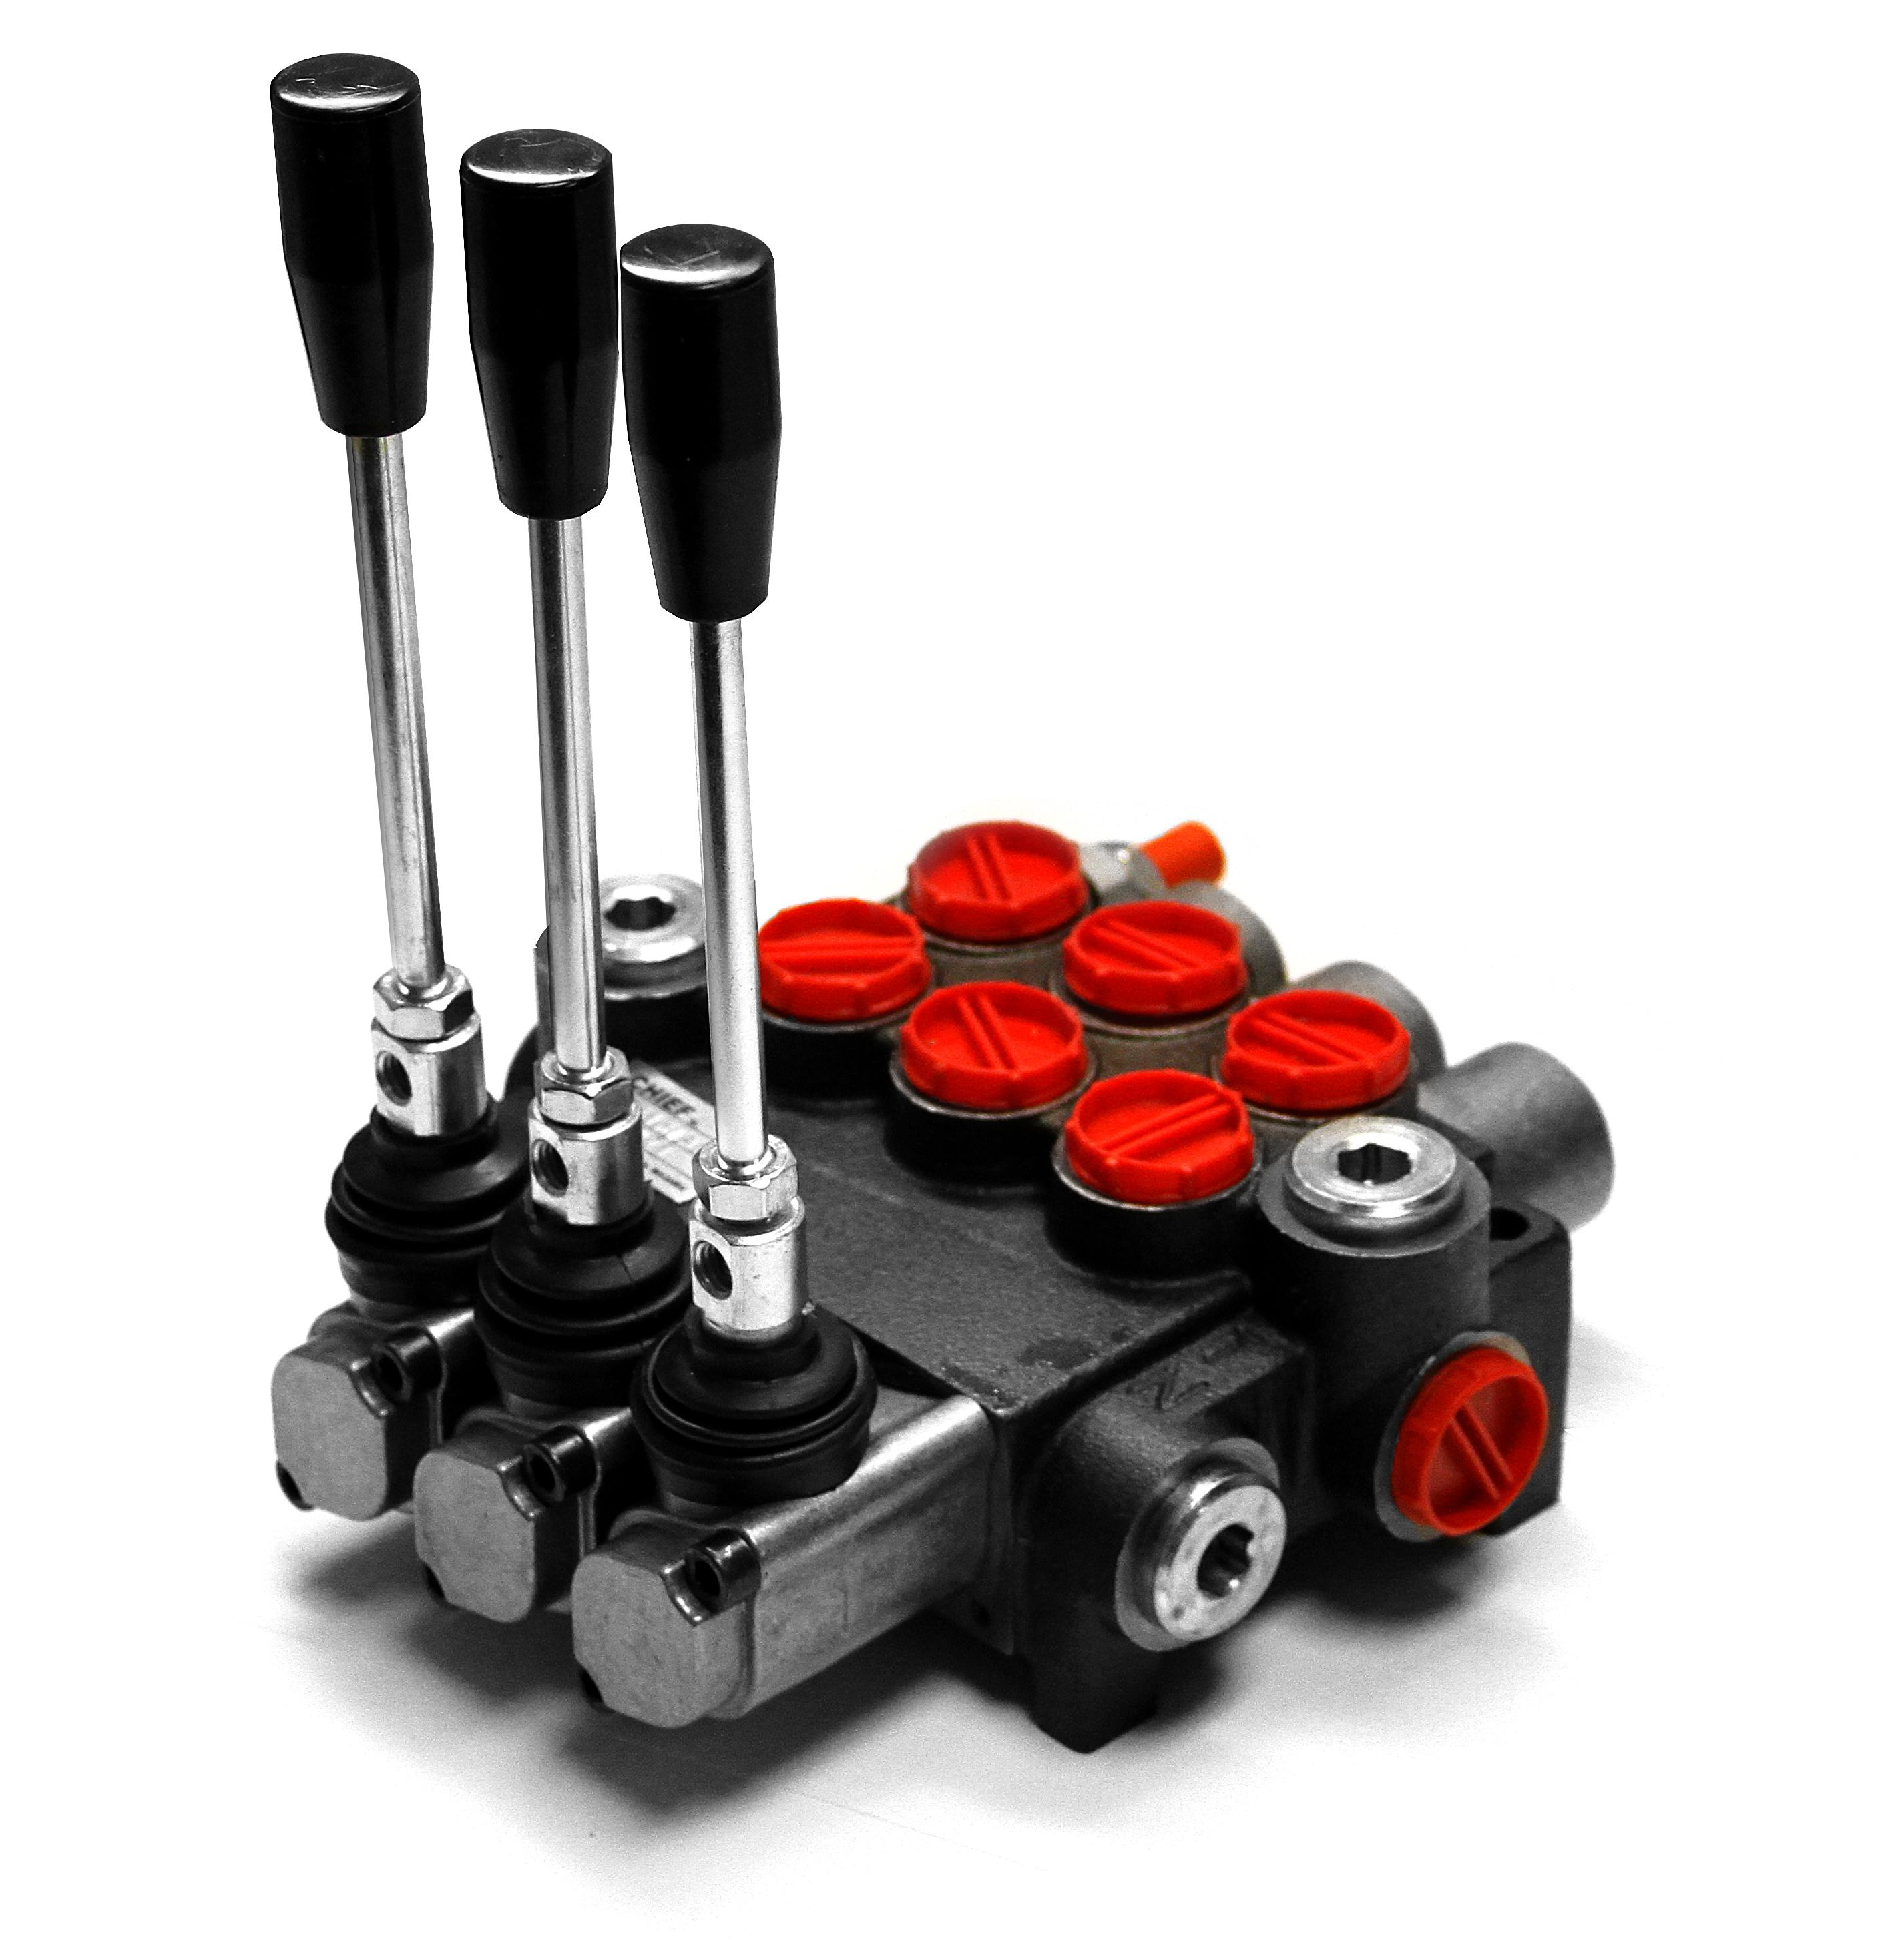 Hydraulic Directional Control, Flow, Solenoid, and Check Valves